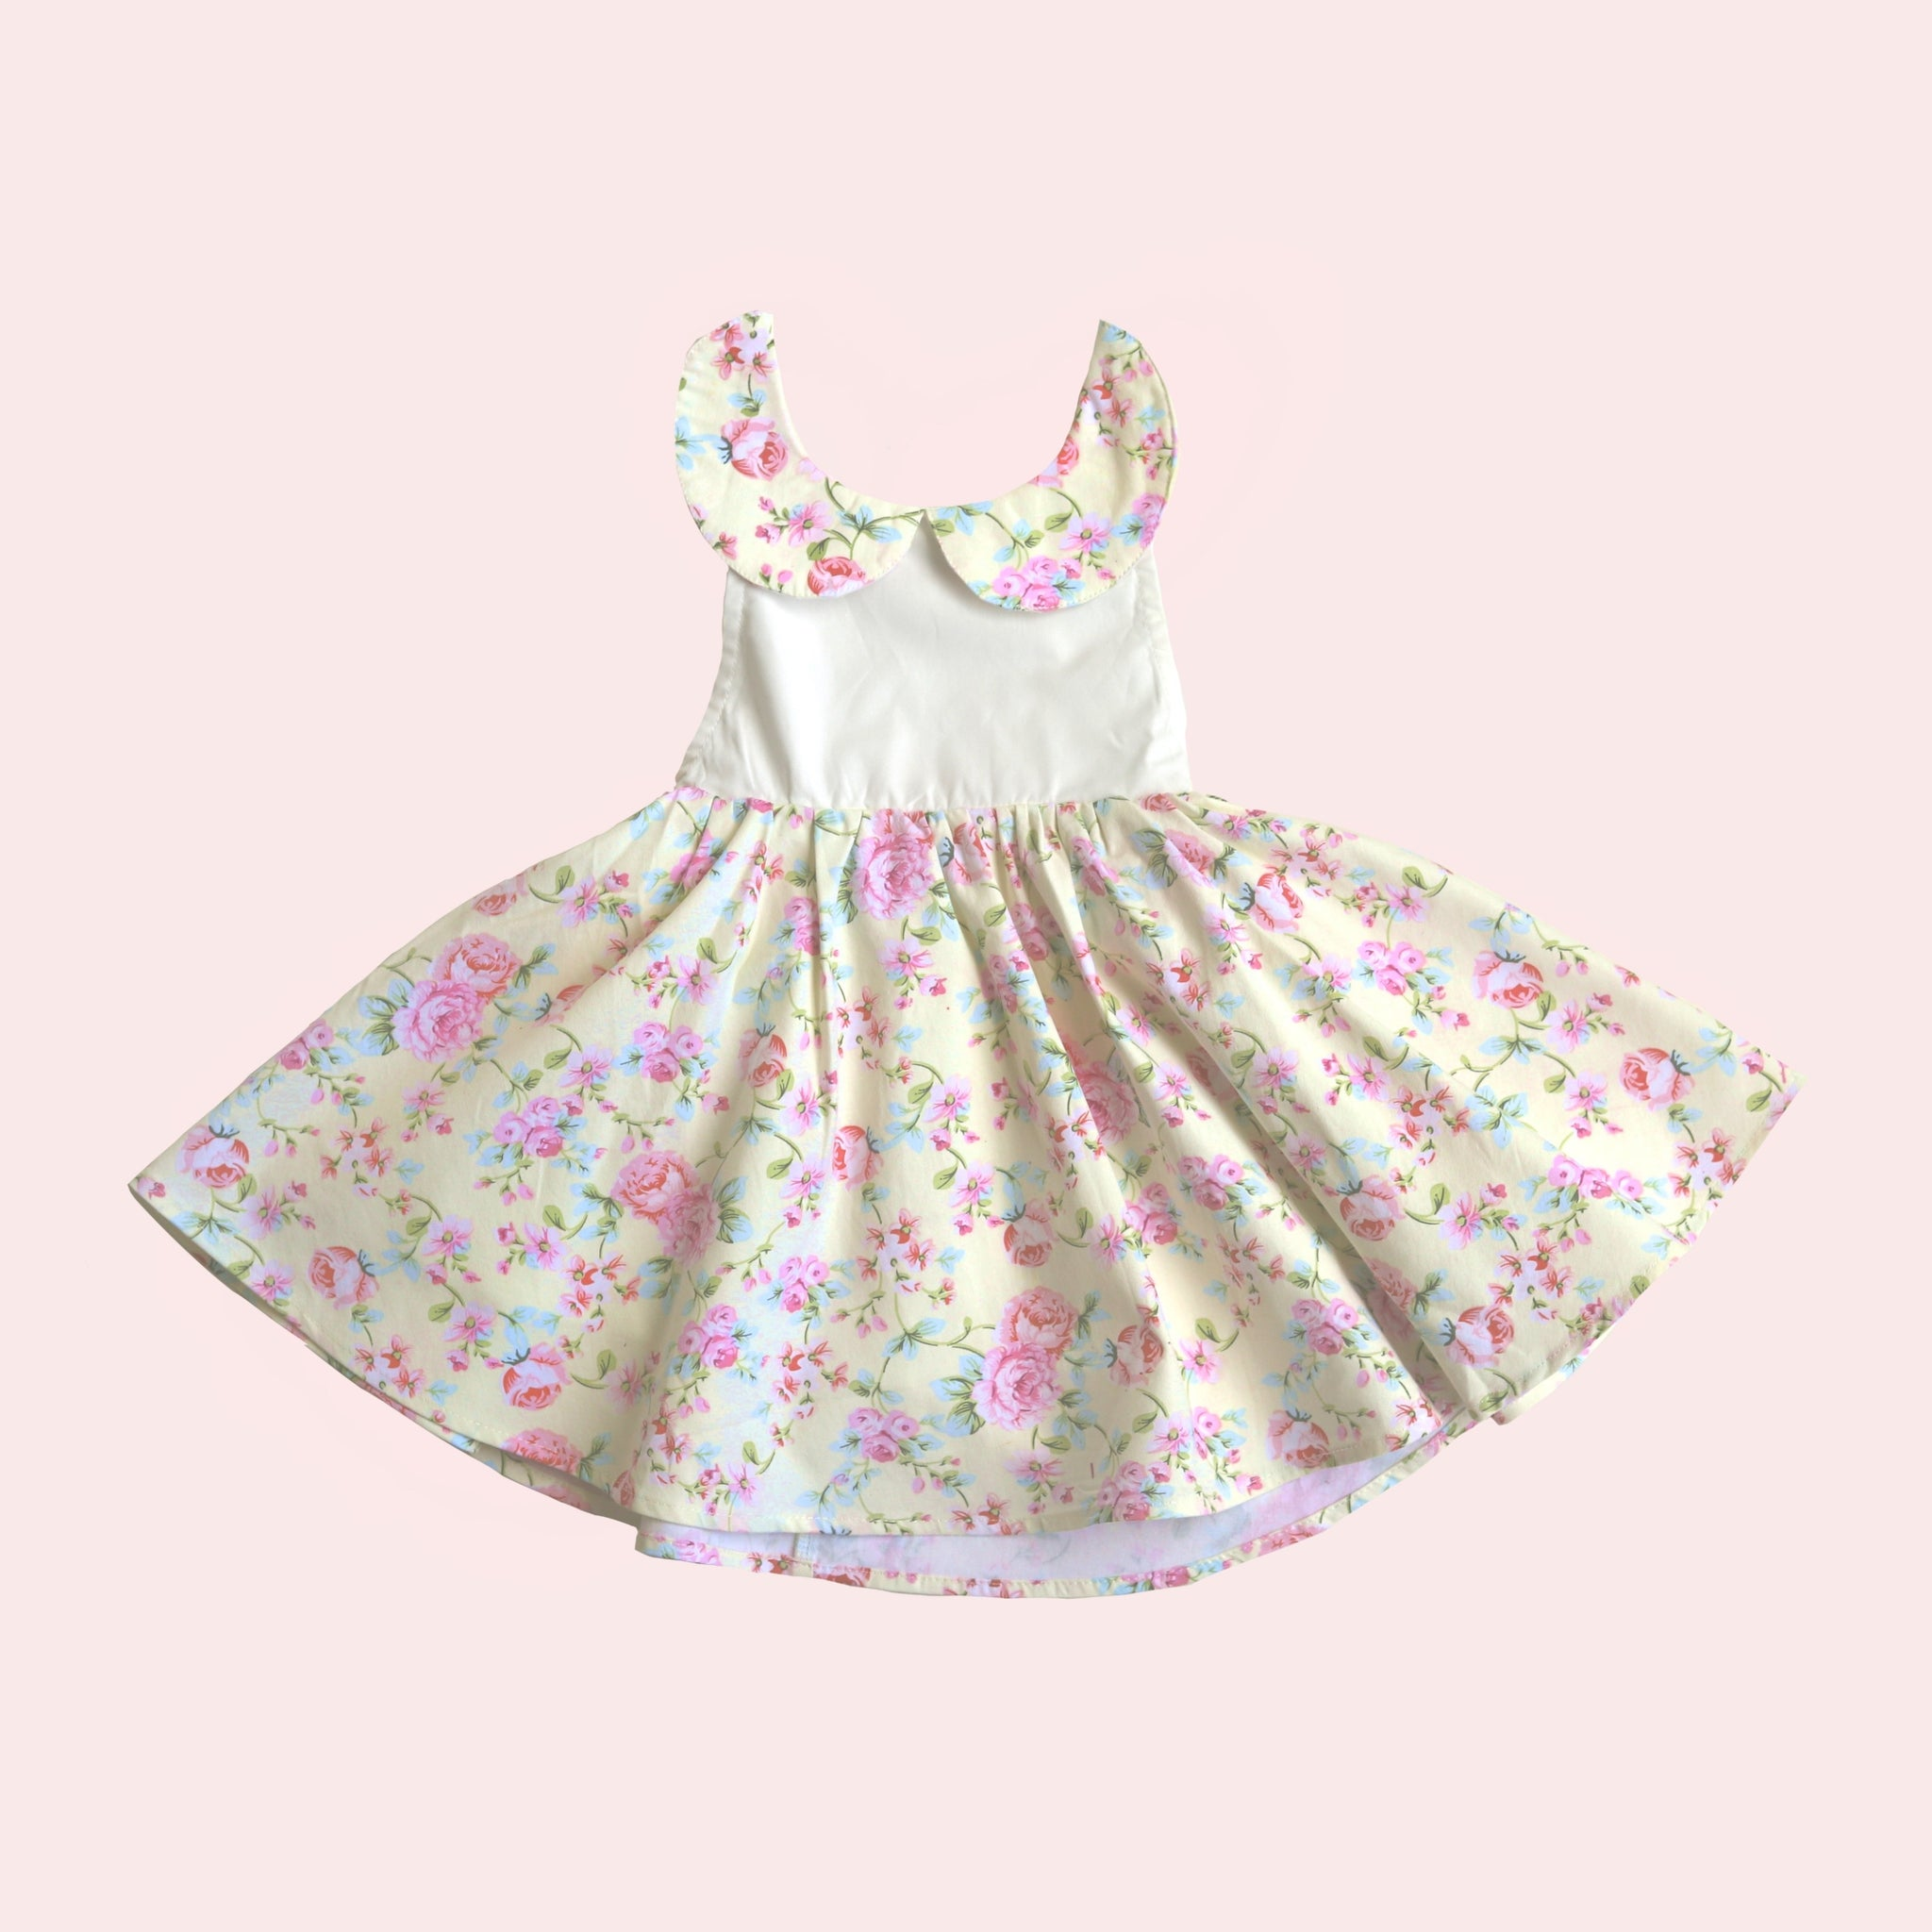 LIMITED EDITION Sweetheart Dress + bow - Evie